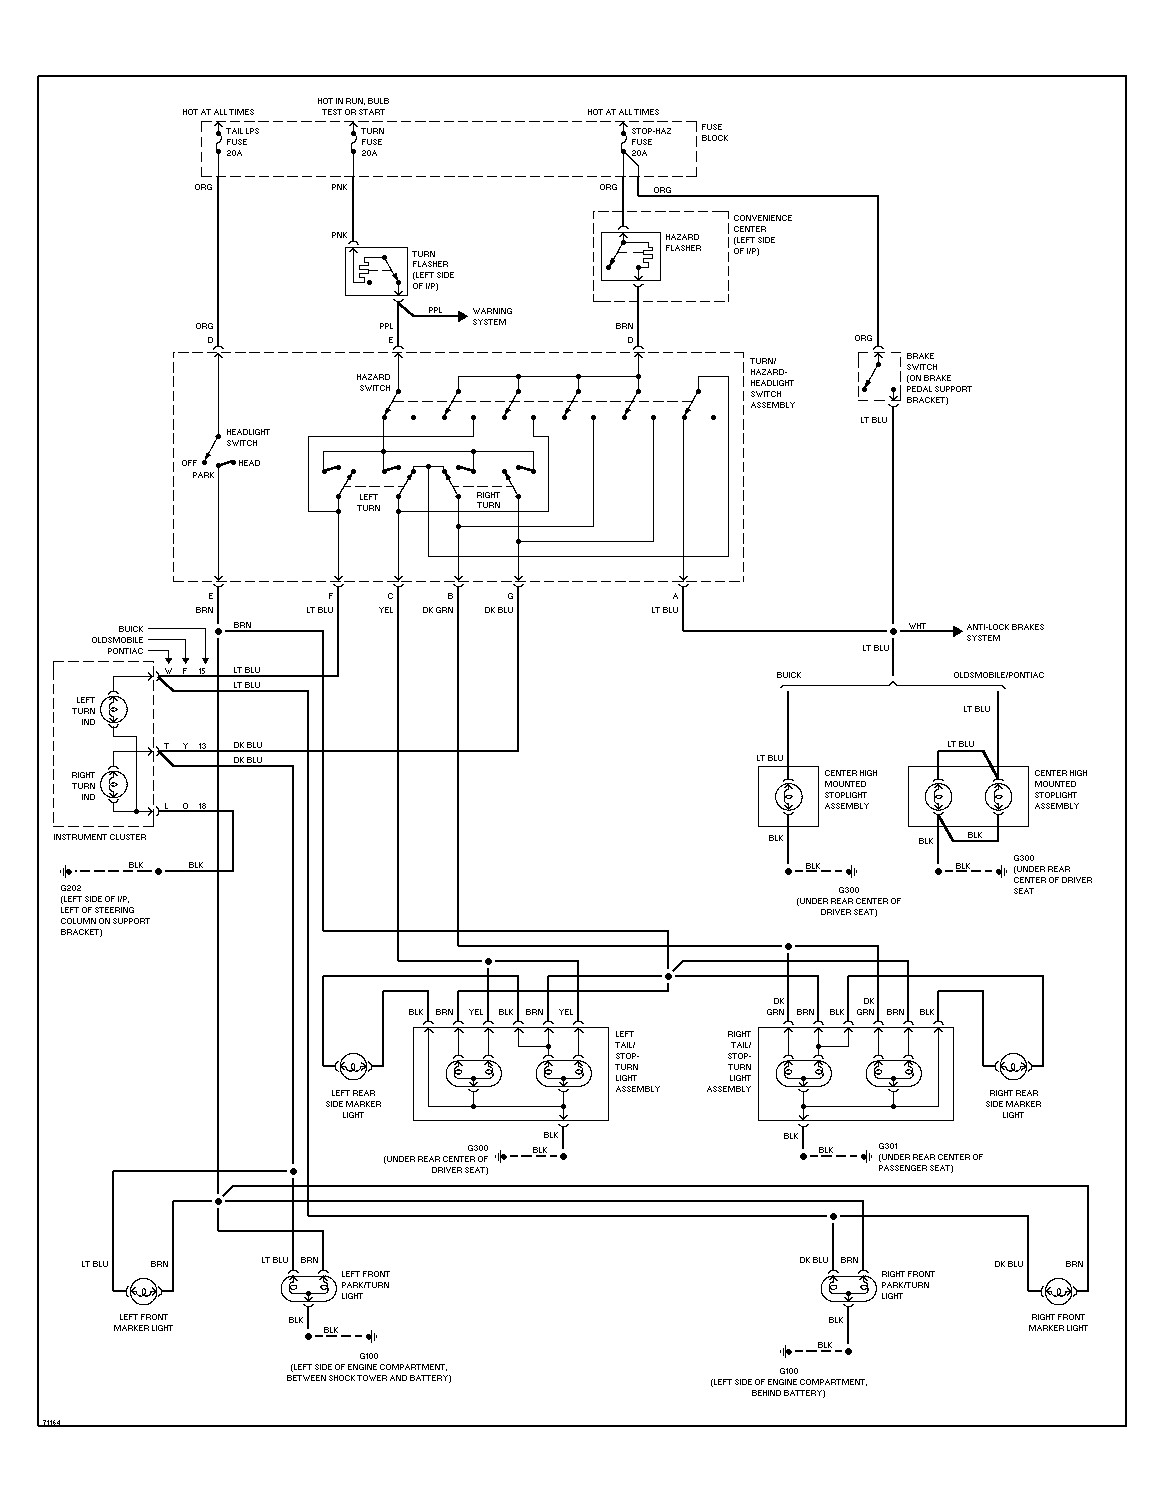 2001 Pontiac Grand Prix Radio Wiring Diagram from mainetreasurechest.com